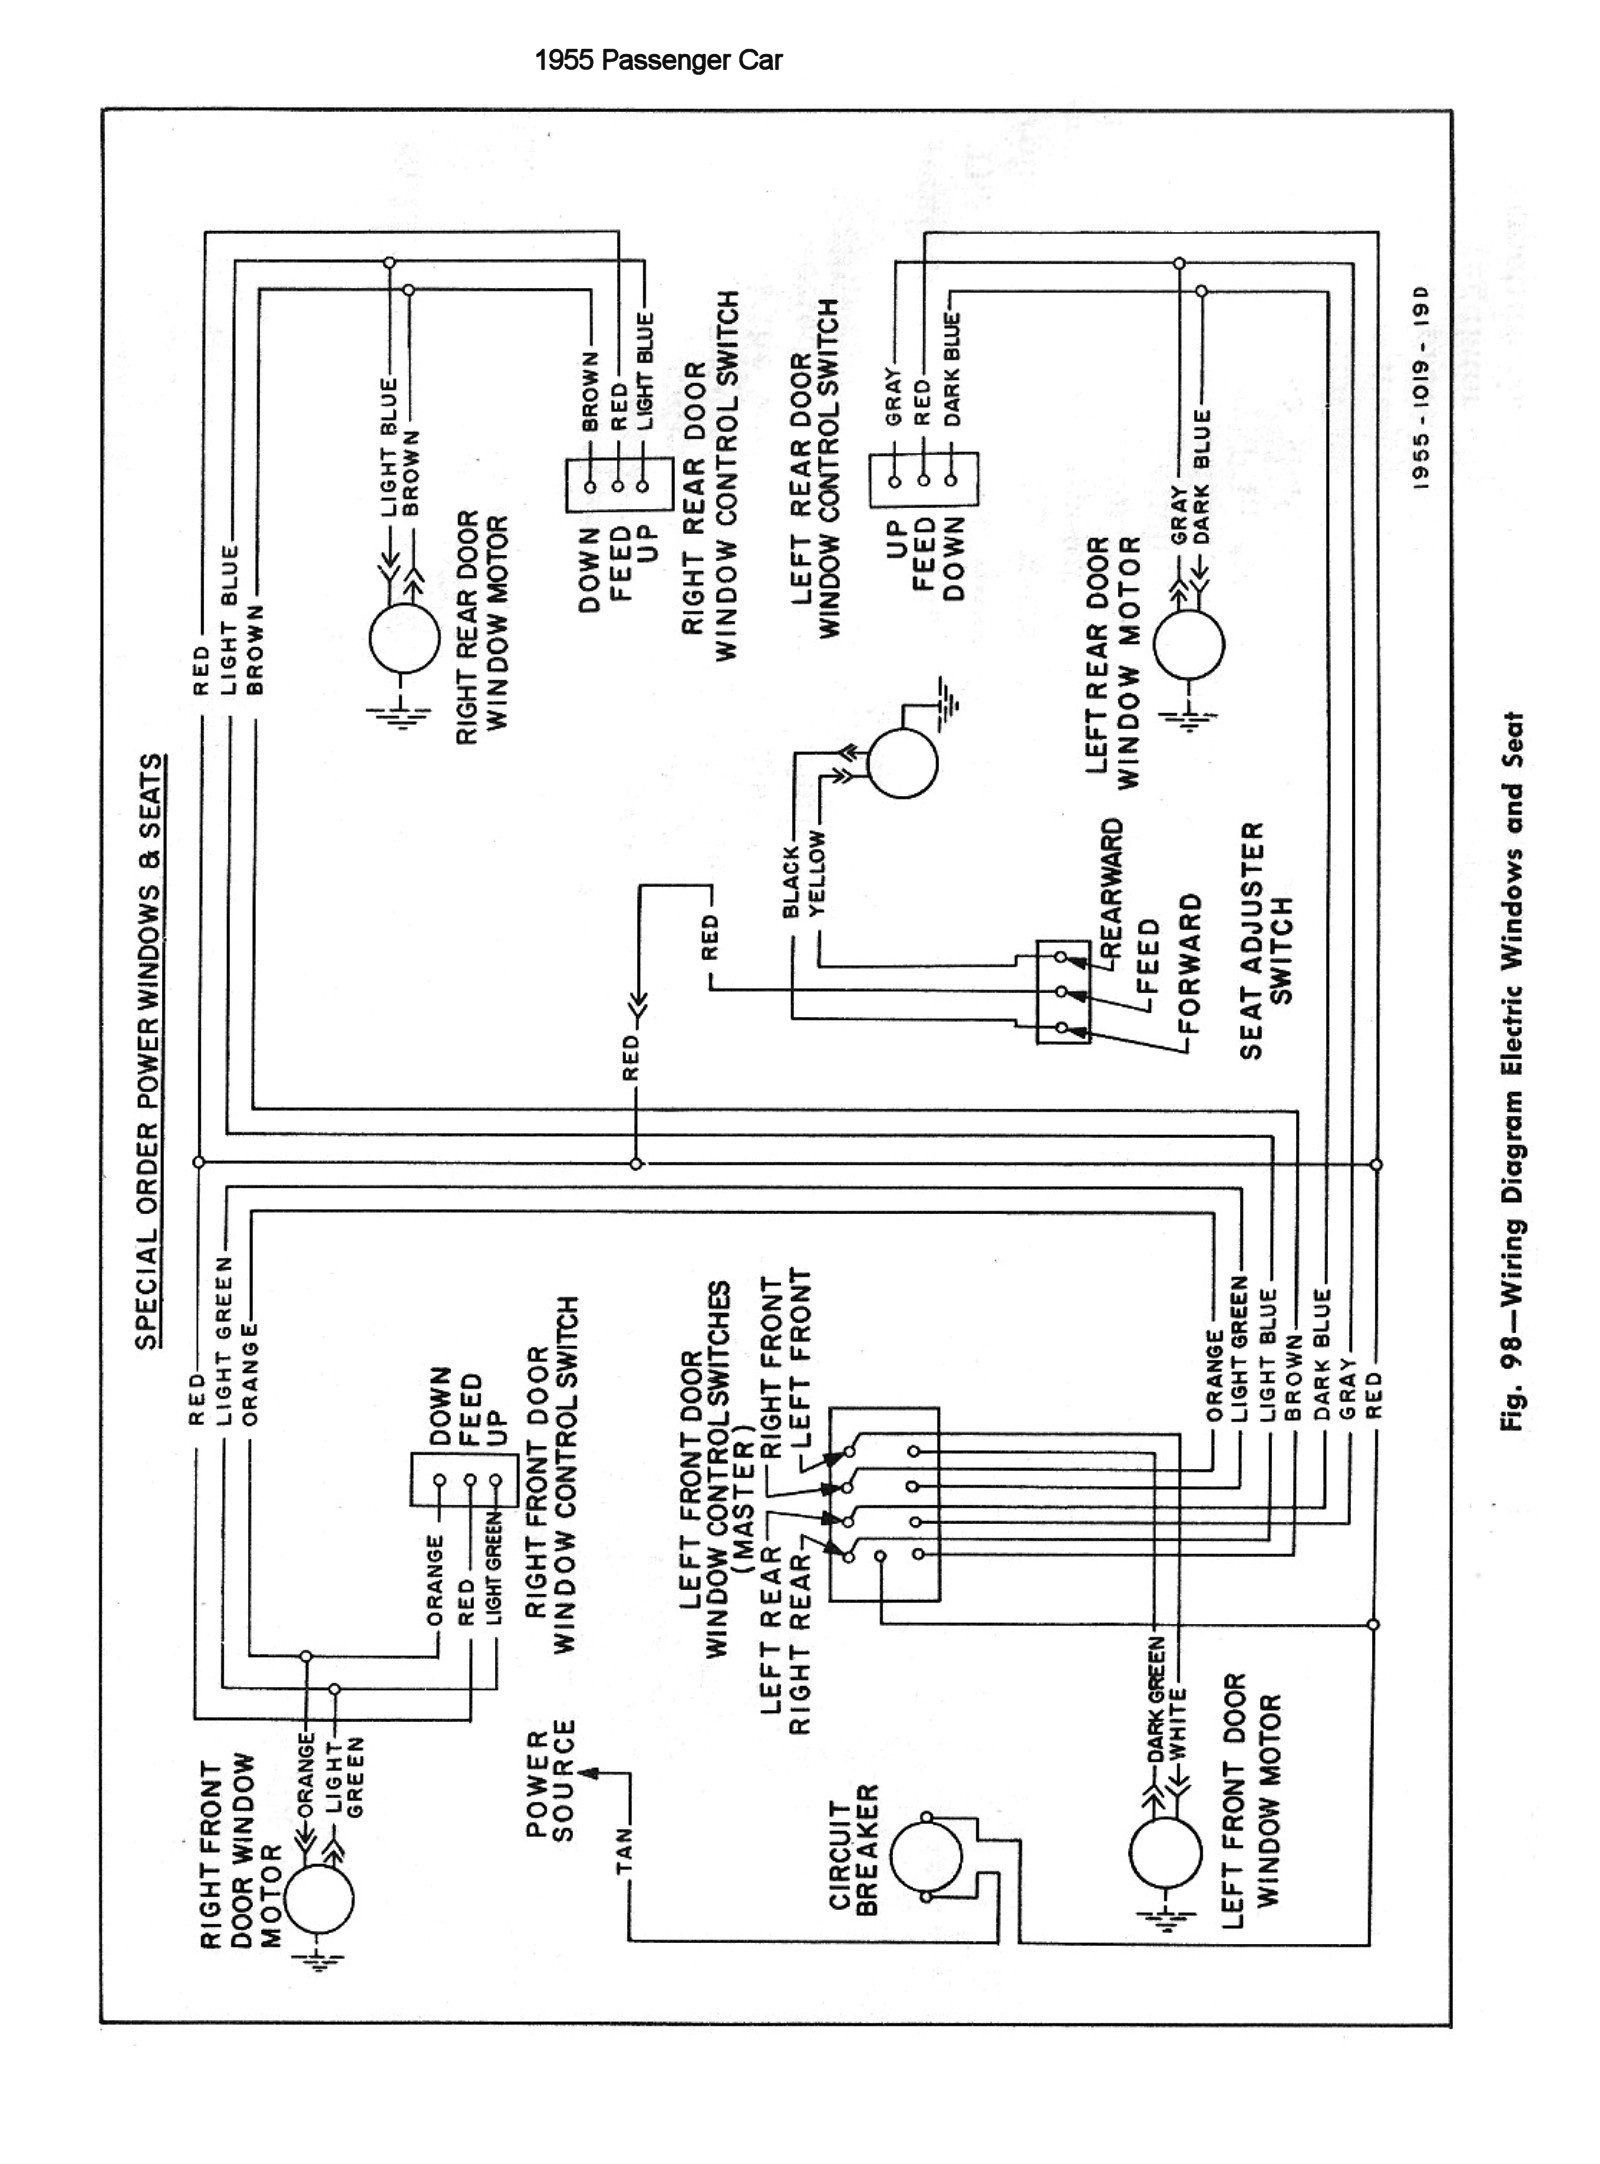 [WRG-0325] 1998 Four Winns Wiring Diagram